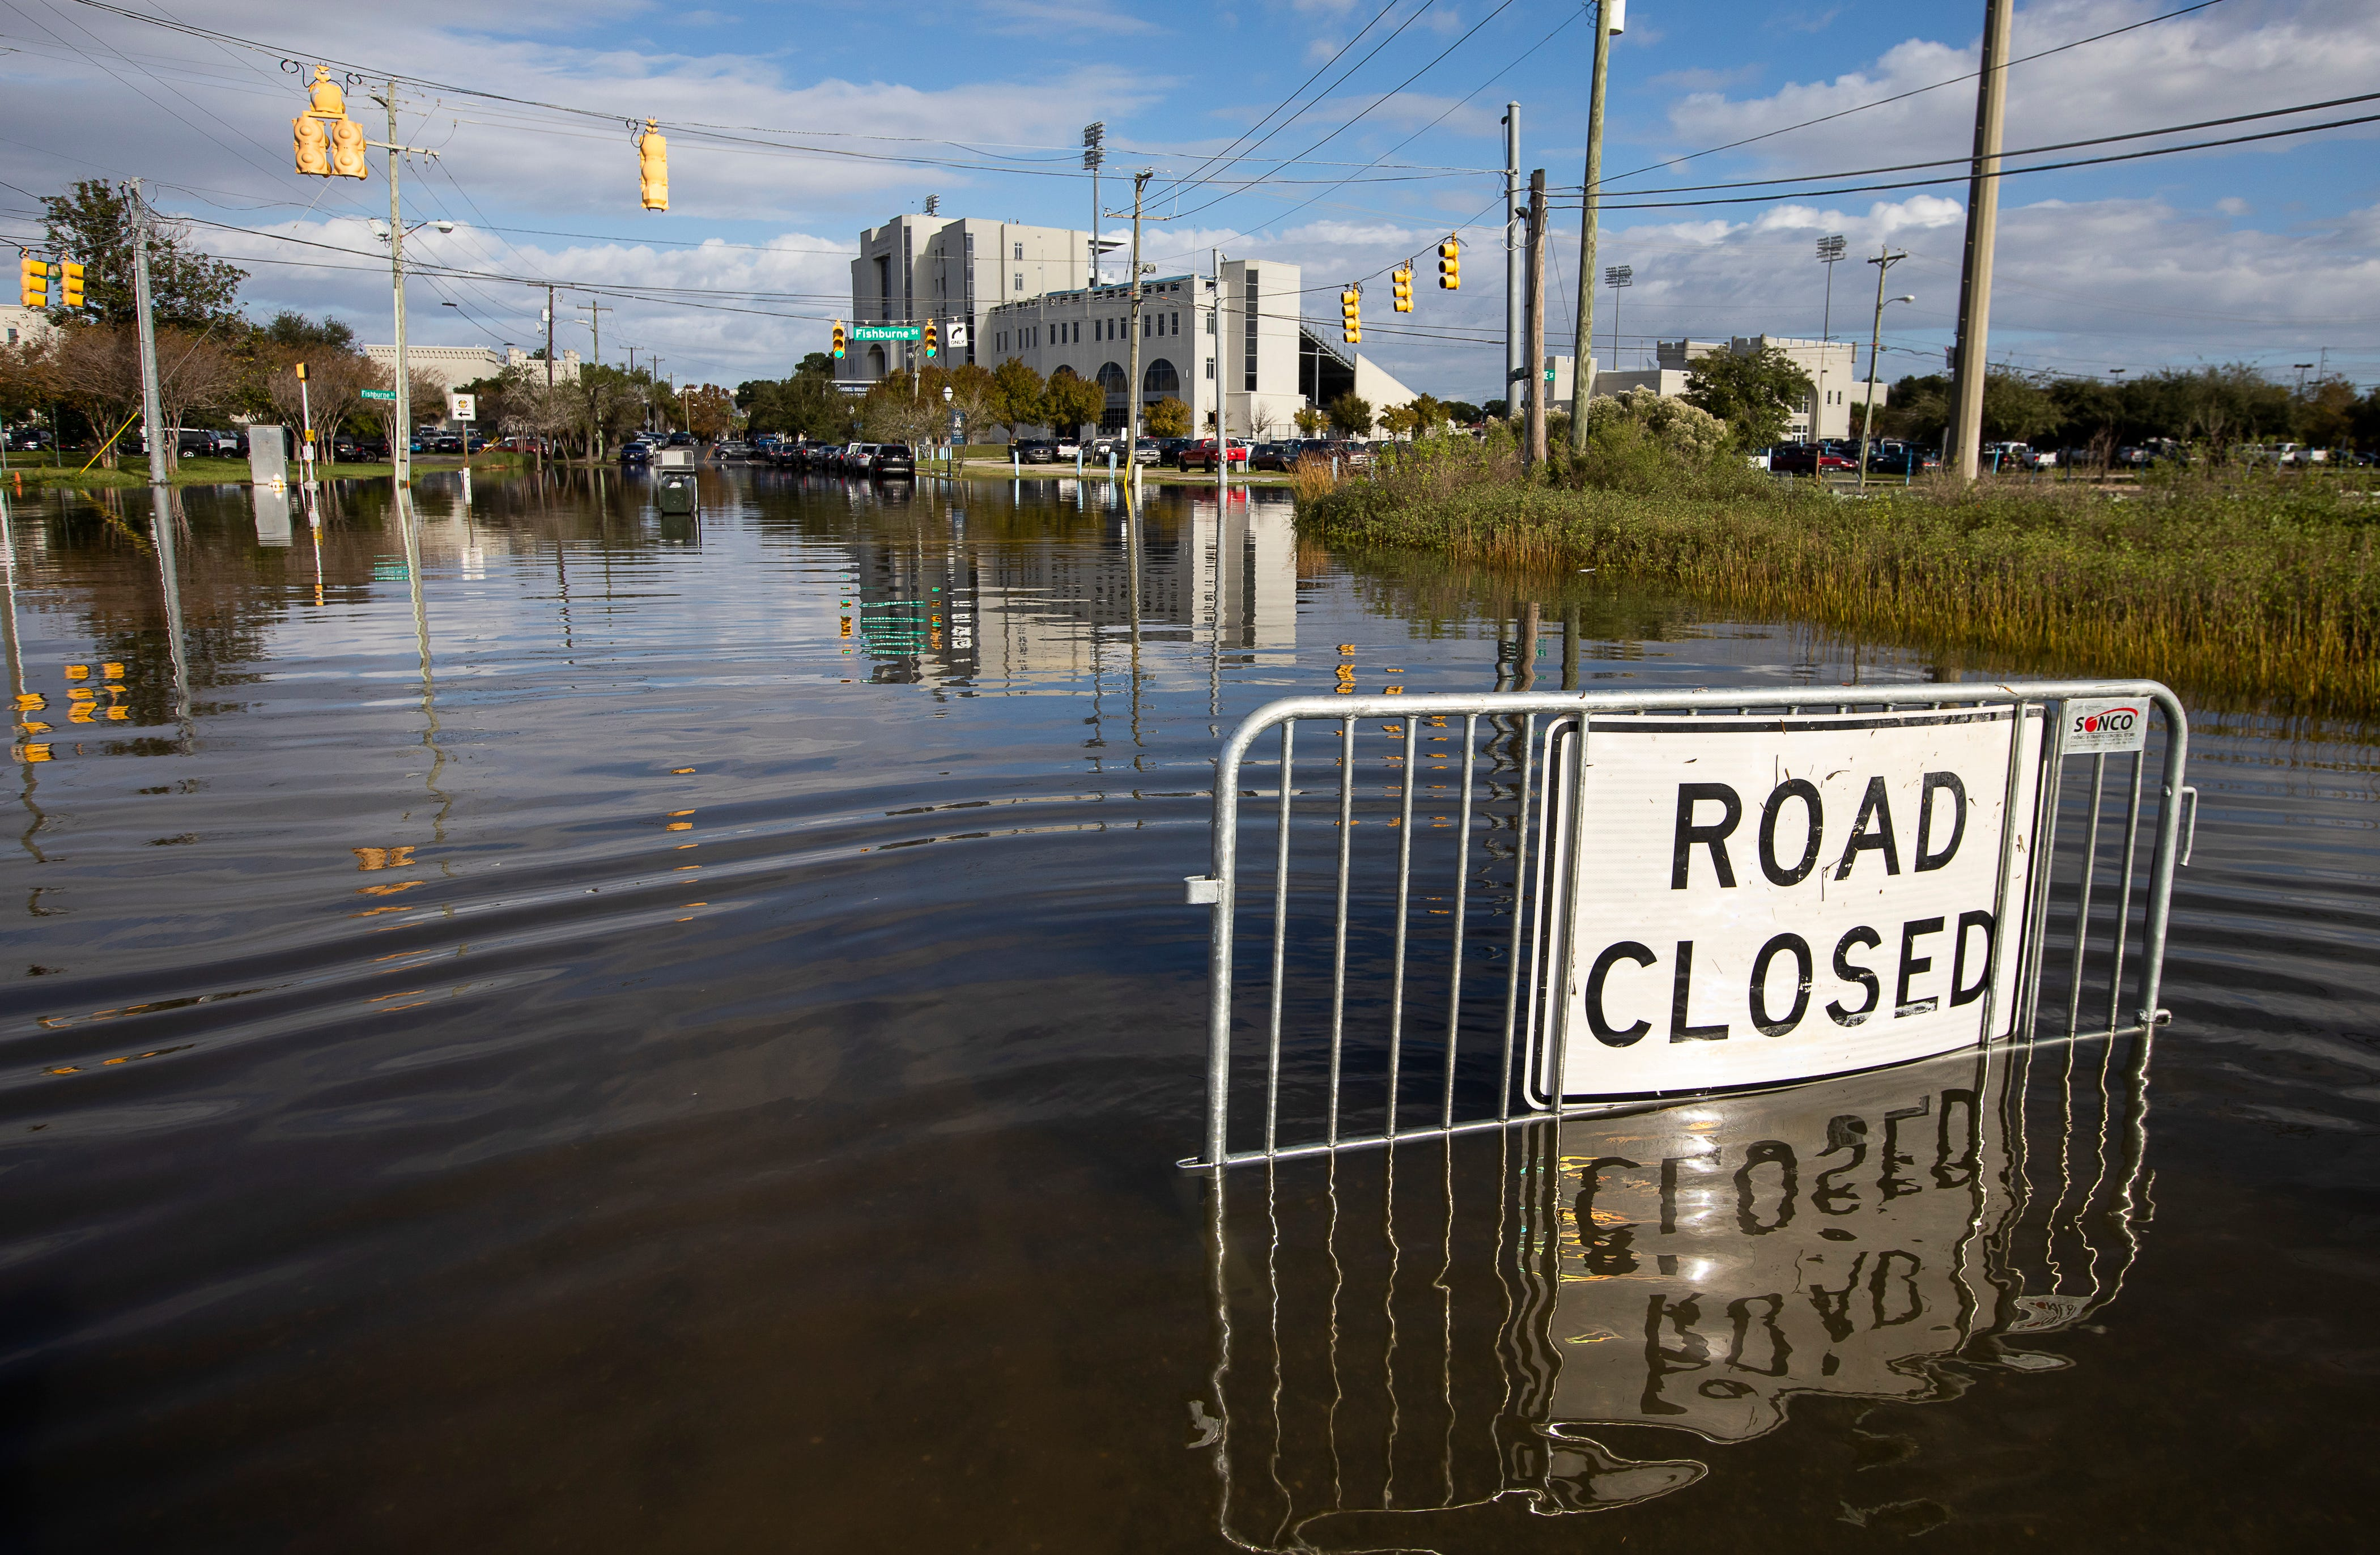 A road closed sign tells motorists to not pass through the floodwaters at a Charleston, S.C., intersection as a king tide rolls in. South Carolina is home to some of the biggest gaps in current flood insurance premiums vs. actual risk.